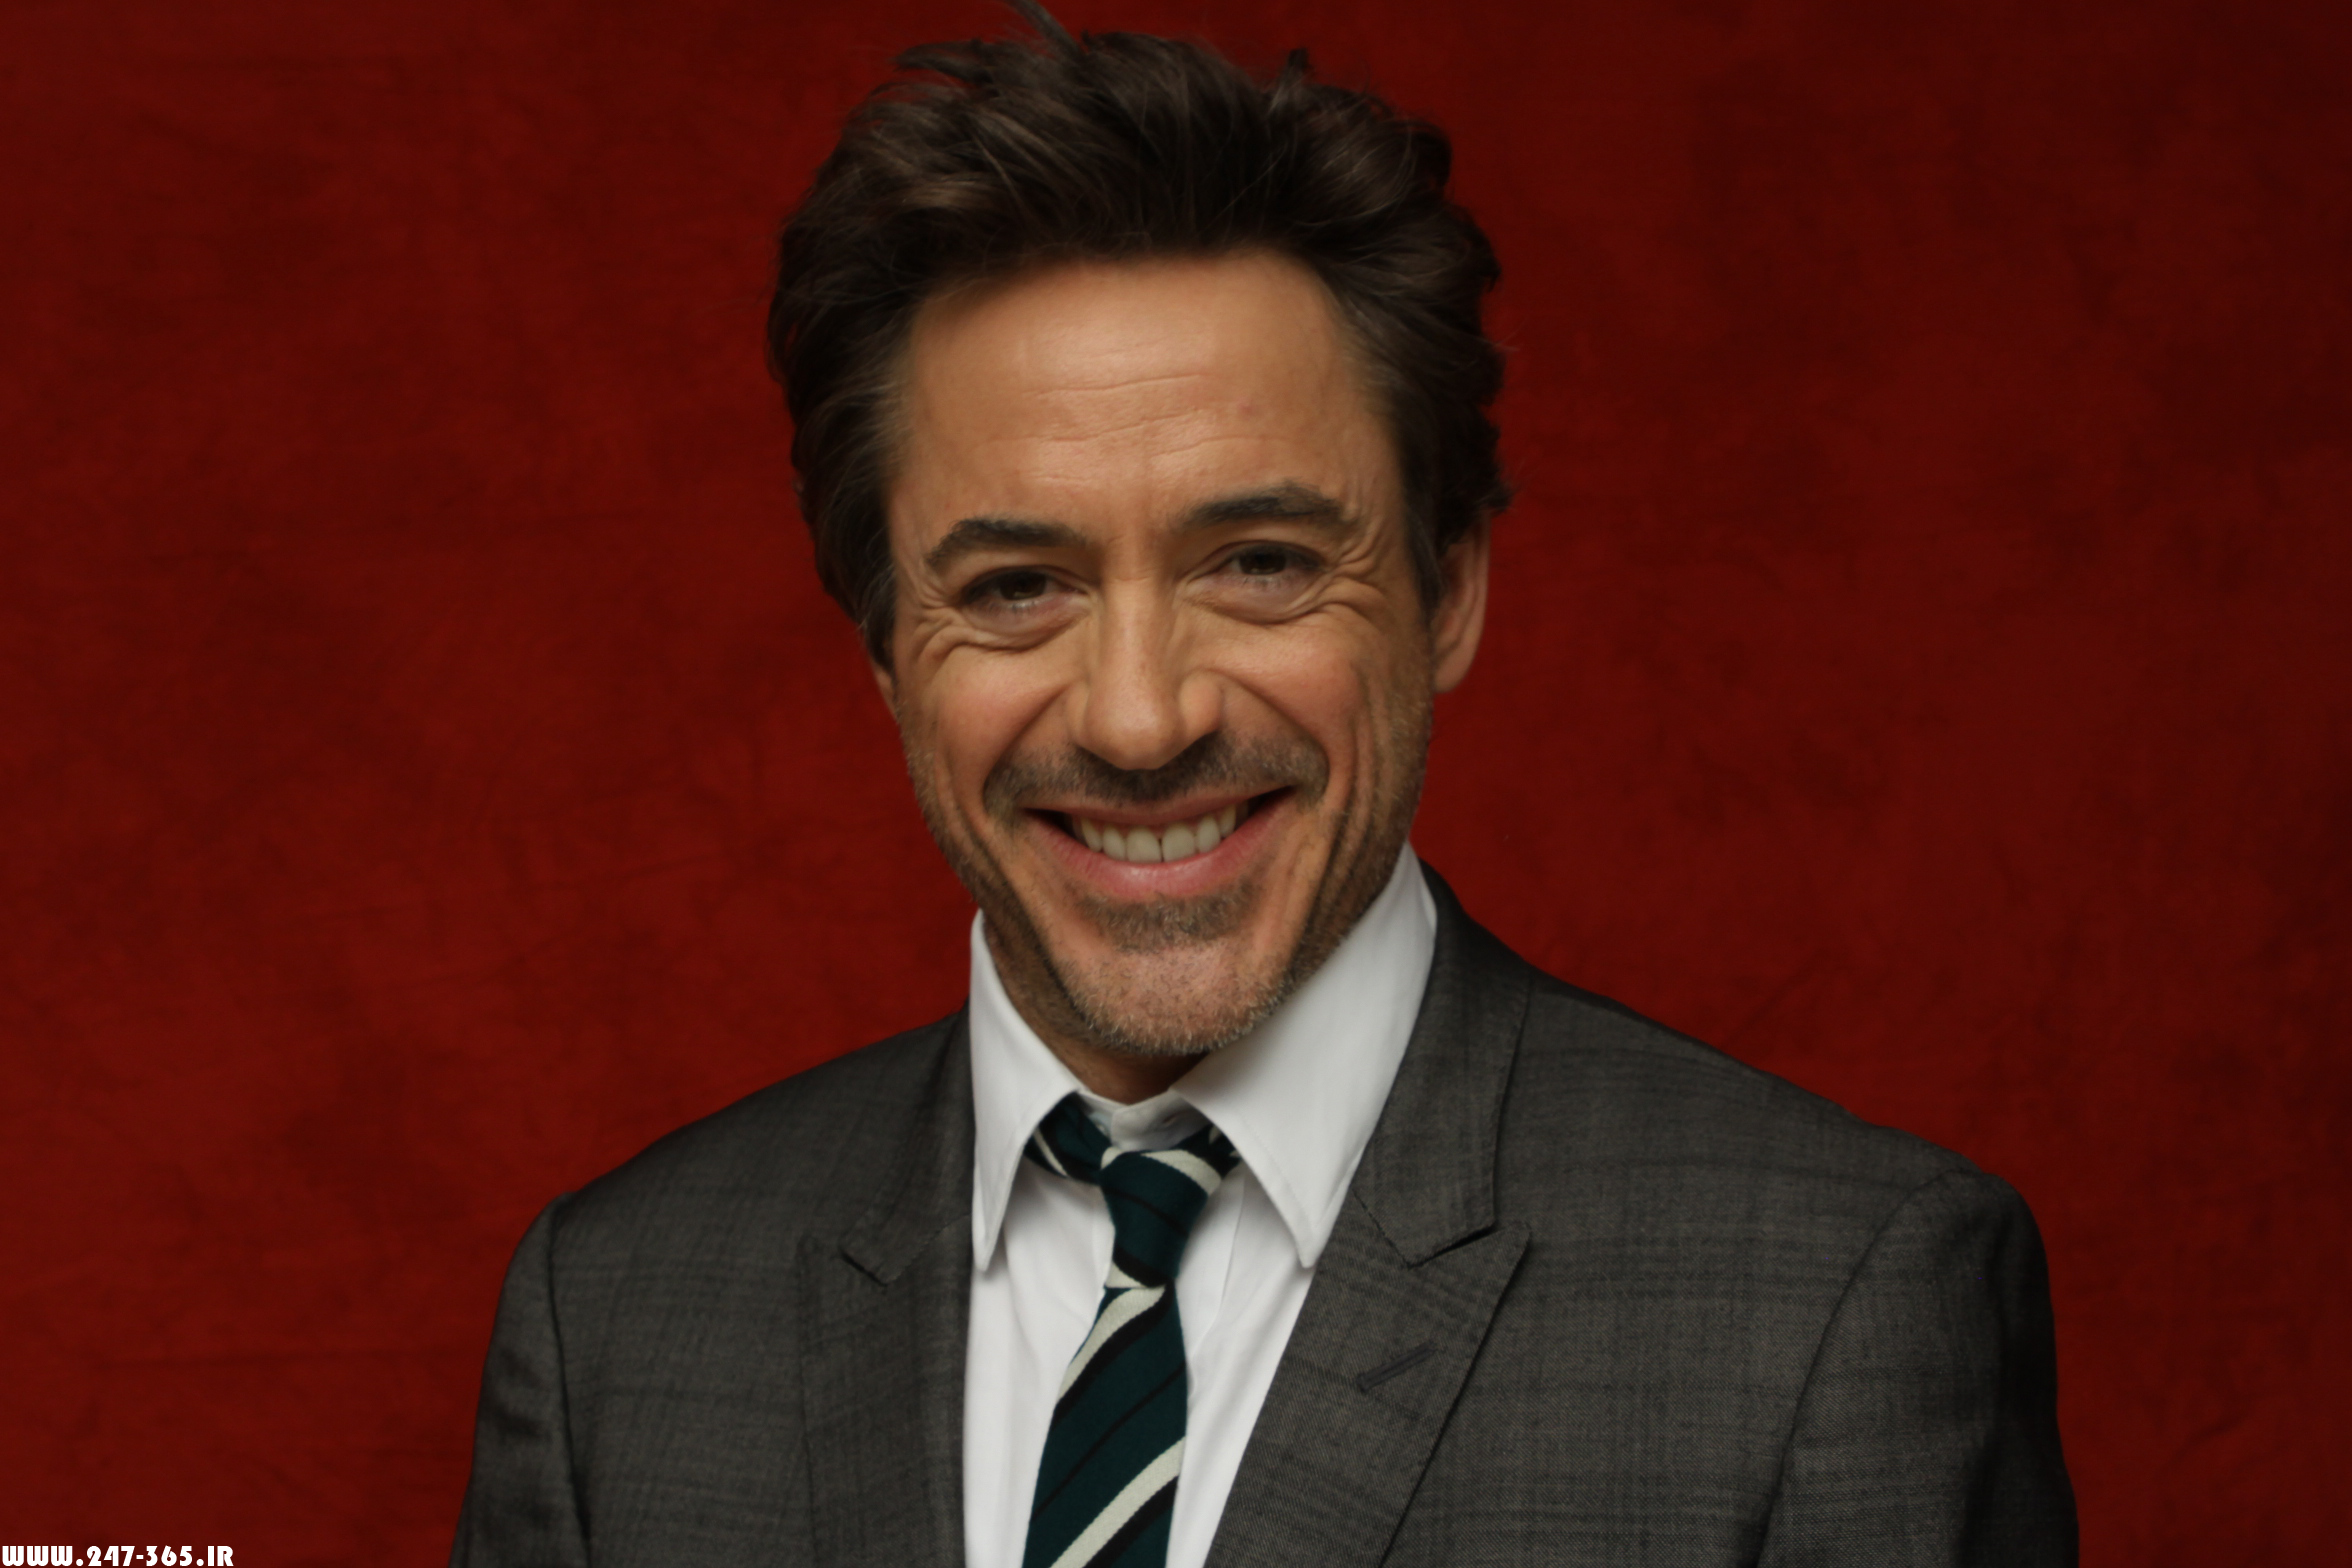 http://dl.247-365.ir/pic/celebrity/robert_downey_jr_2/Robert_Downey_Jr_2_19.jpg